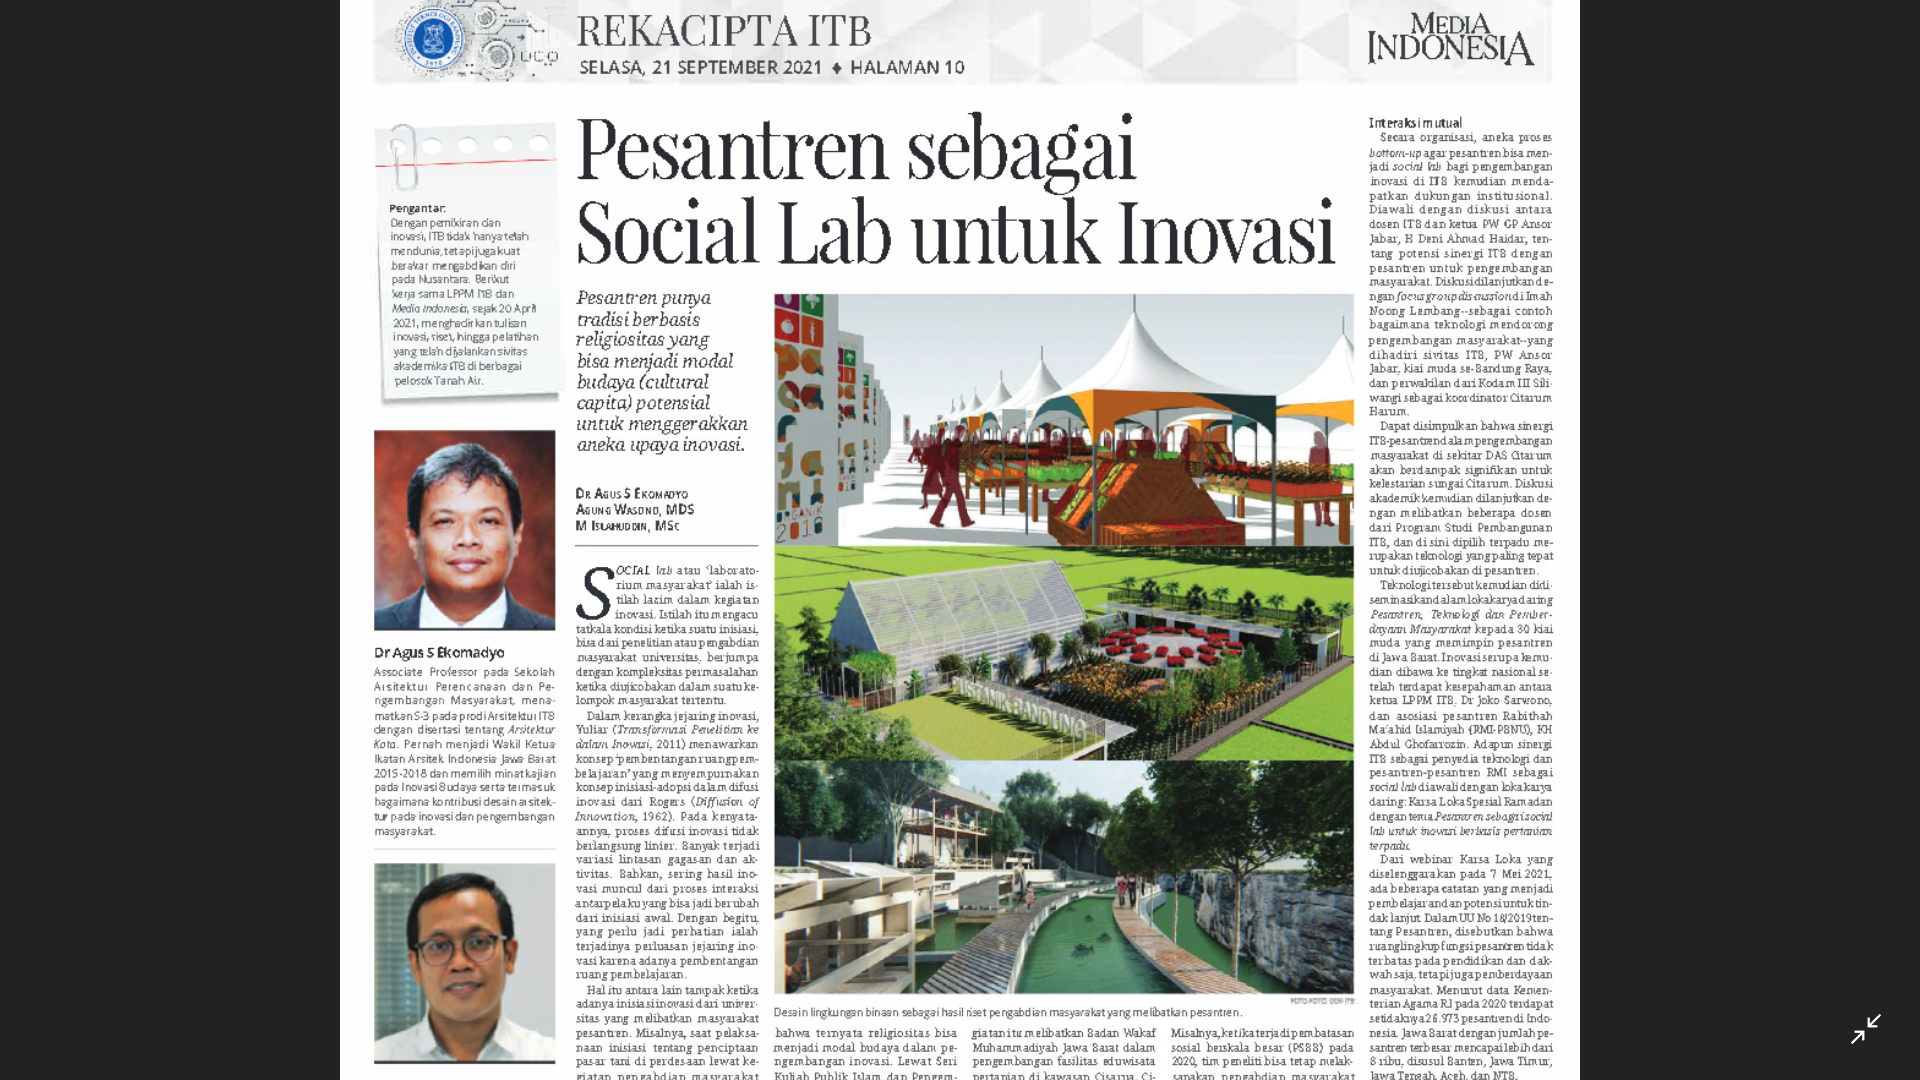 itb-islamic-boarding-schools-collaboration-in-the-spirit-of-innovation